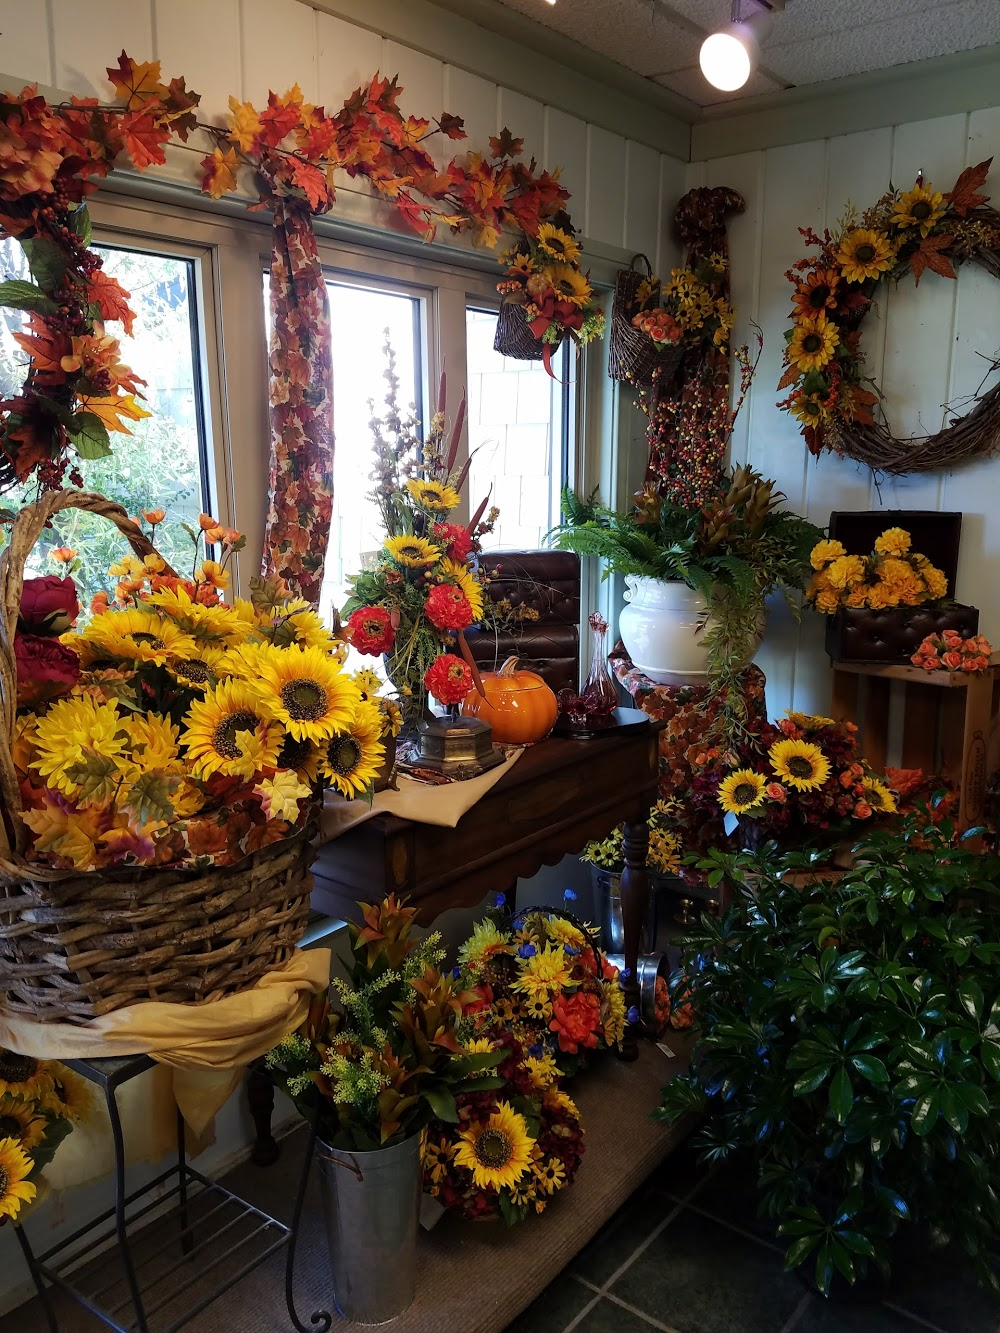 Churchland's Village Flower Shop